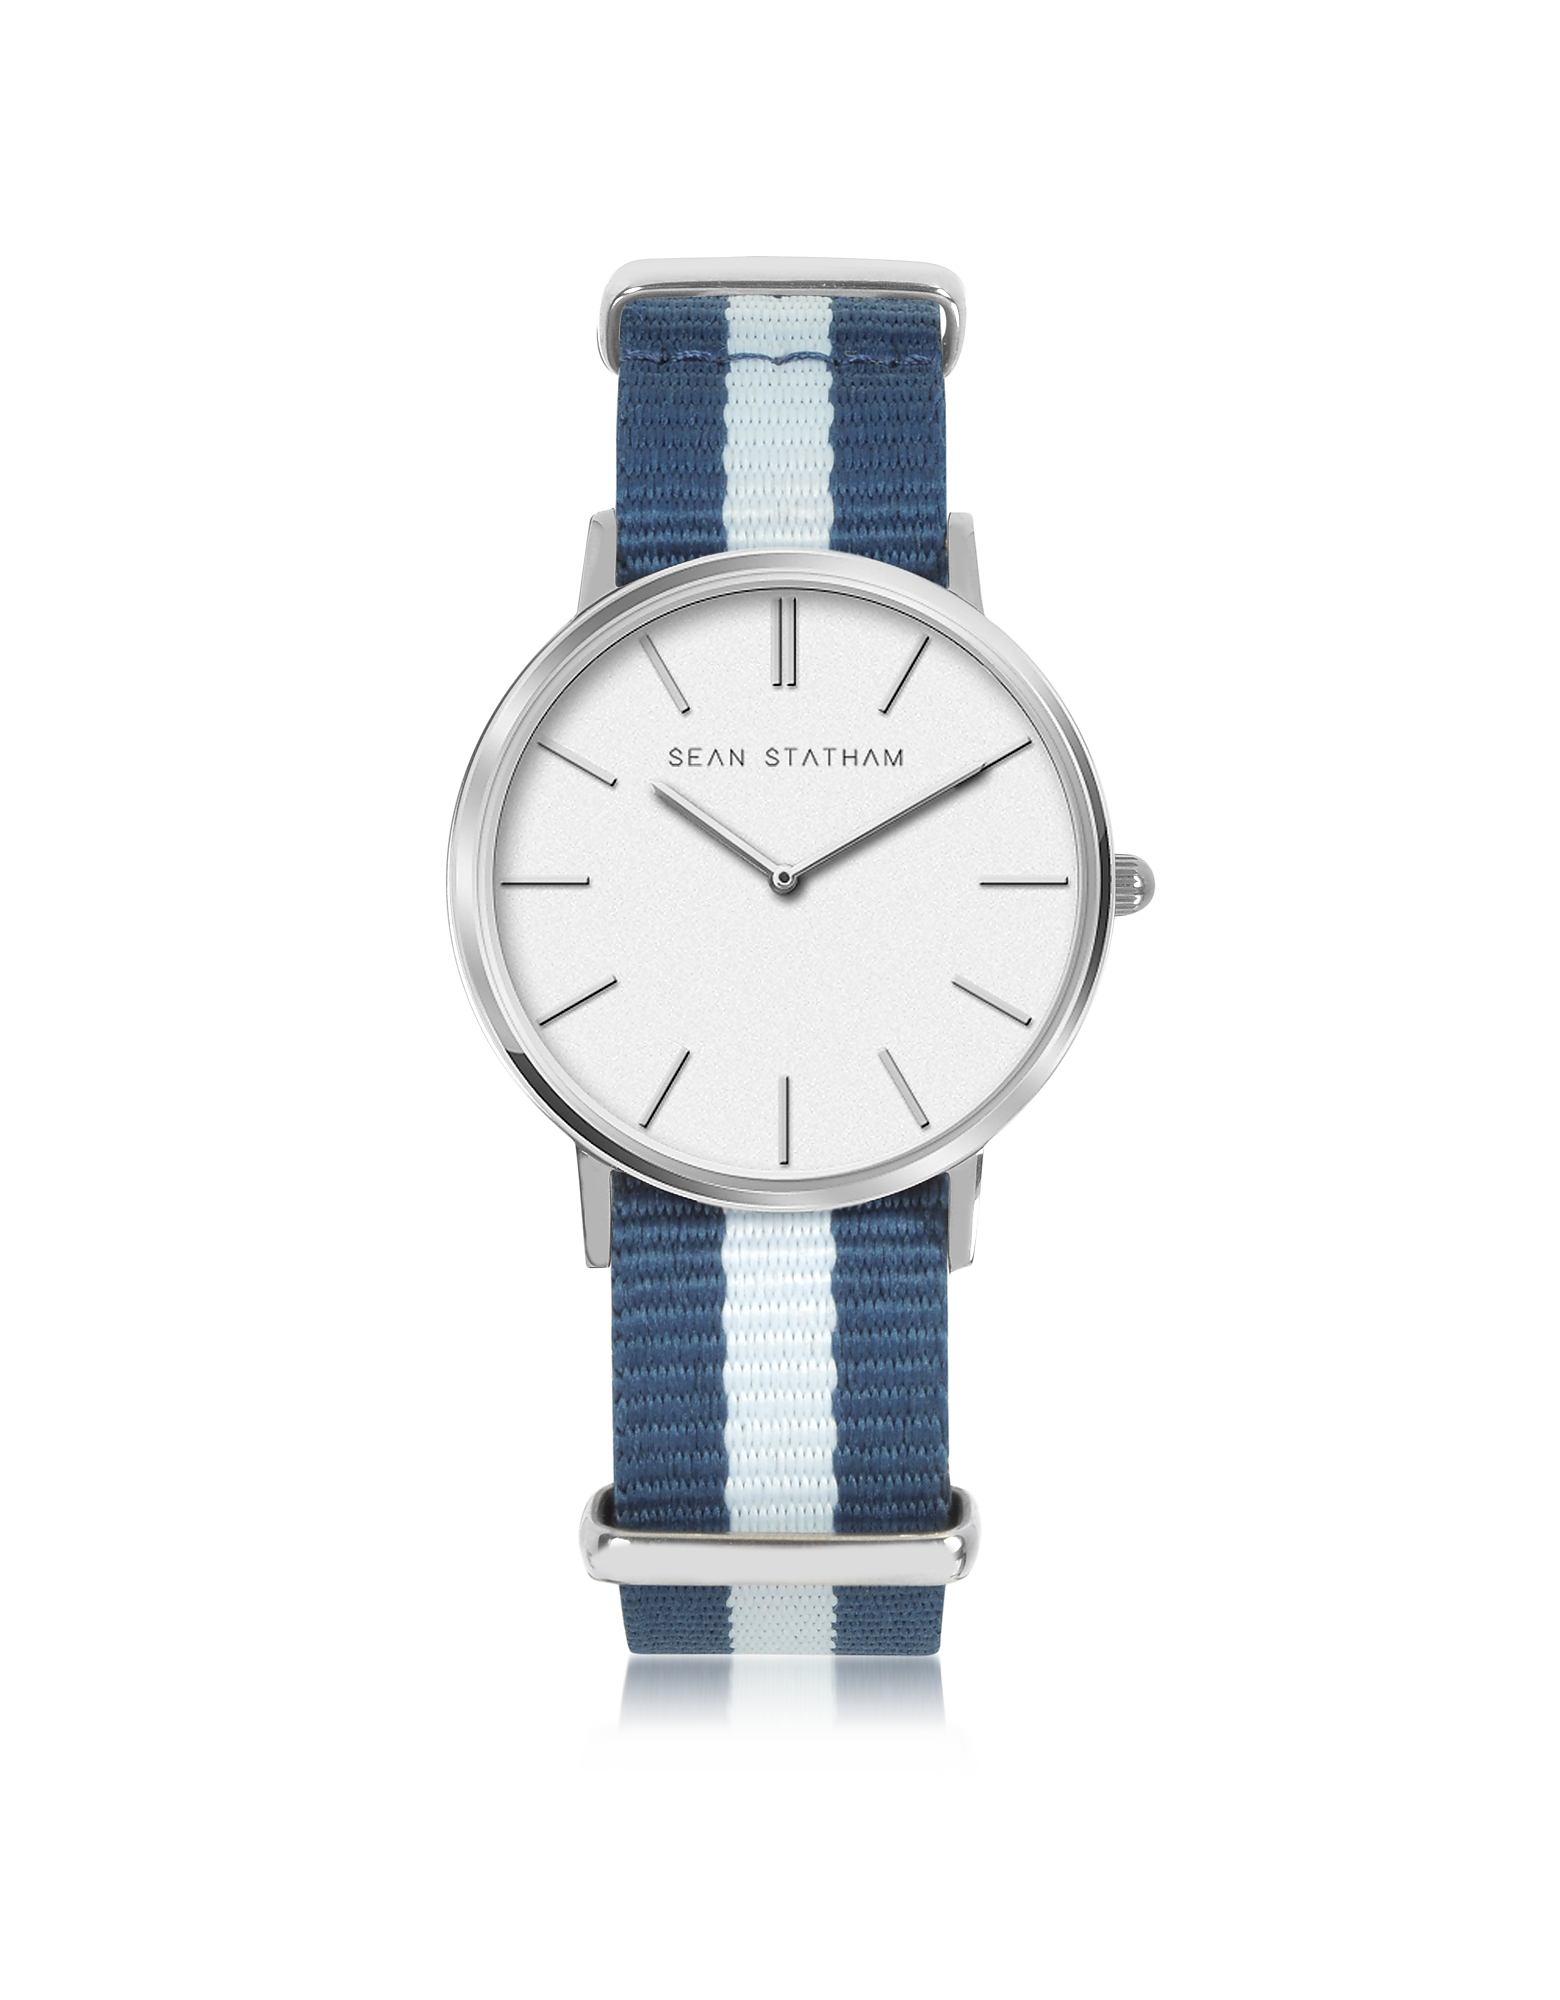 Sean Statham Women's Watches, Stainless Steel Unisex Quartz Watch w/Blue Striped Canvas Band